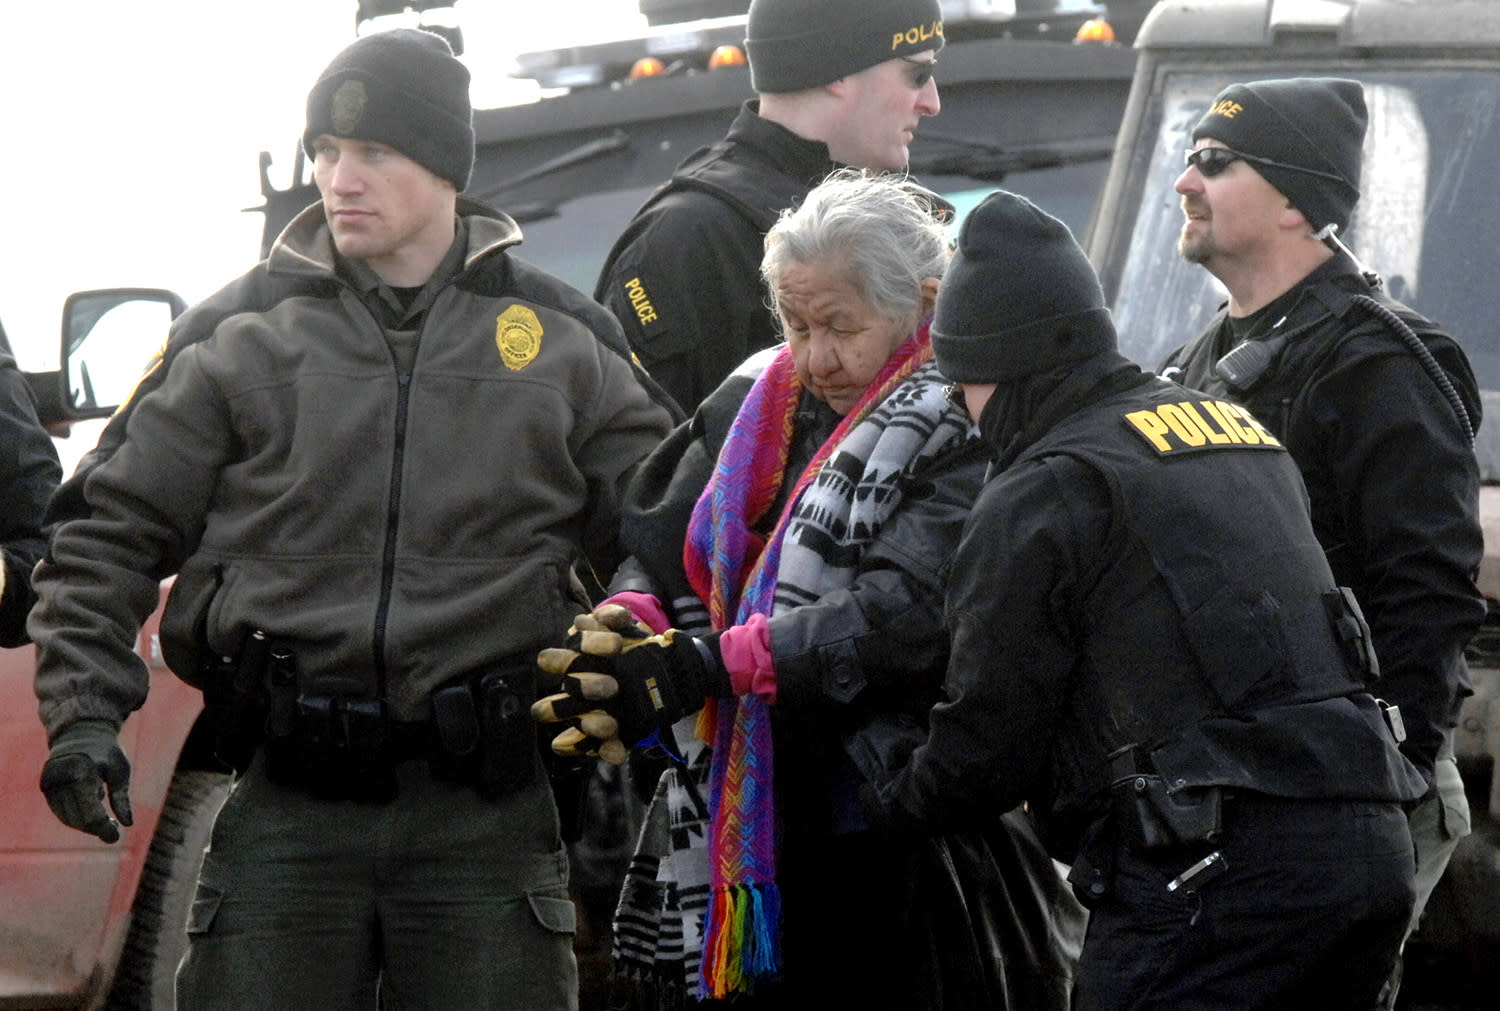 <p>An elderly woman is escorted to a transport van after being arrested by law enforcement at the Oceti Sakowin camp as part of the final sweep of the Dakota Access pipeline protesters in Morton County, Thursday, Feb. 23, 2017, near Cannon Ball, N.D. (Mike McCleary/The Bismarck Tribune via AP, Pool) </p>